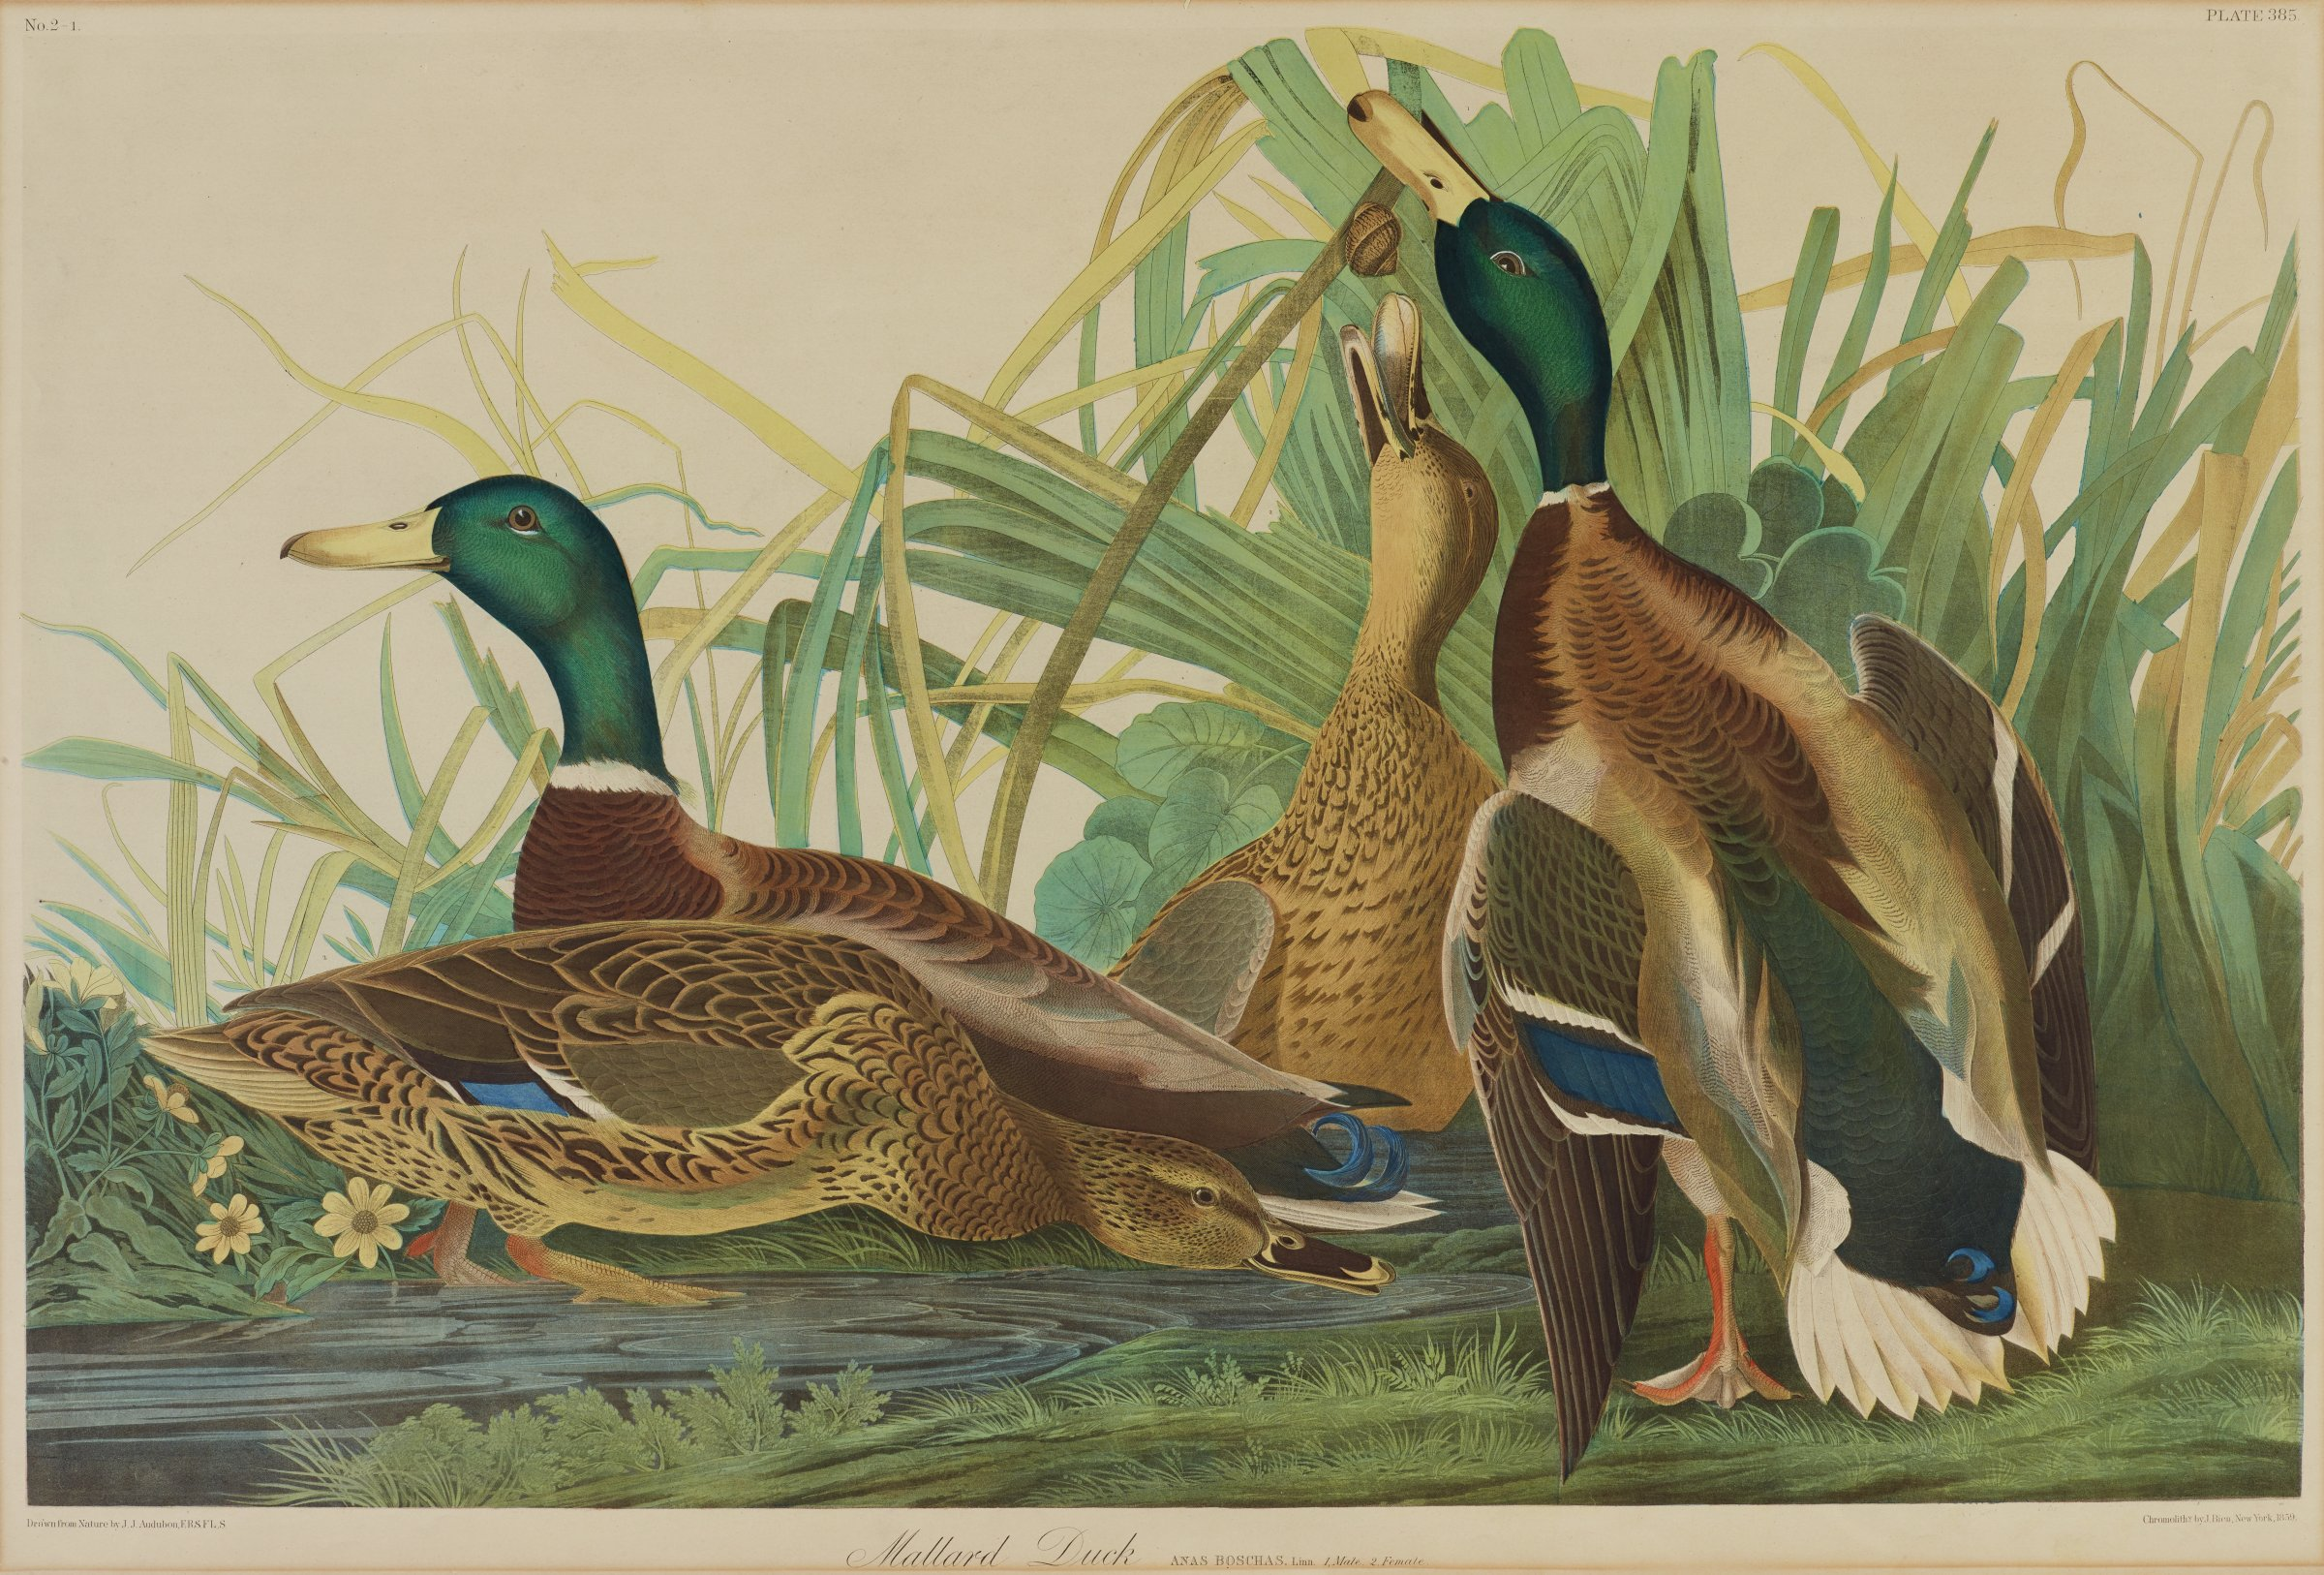 Four ducks are depicted in various stages of movements on the edge of a body of water that is surrounded by thick foliage. The ducks are characterized by brown, dark brown, and white feathering with royal blue accents on their wings and tails. The two larger ducks have dark green heads and a white band around their necks.